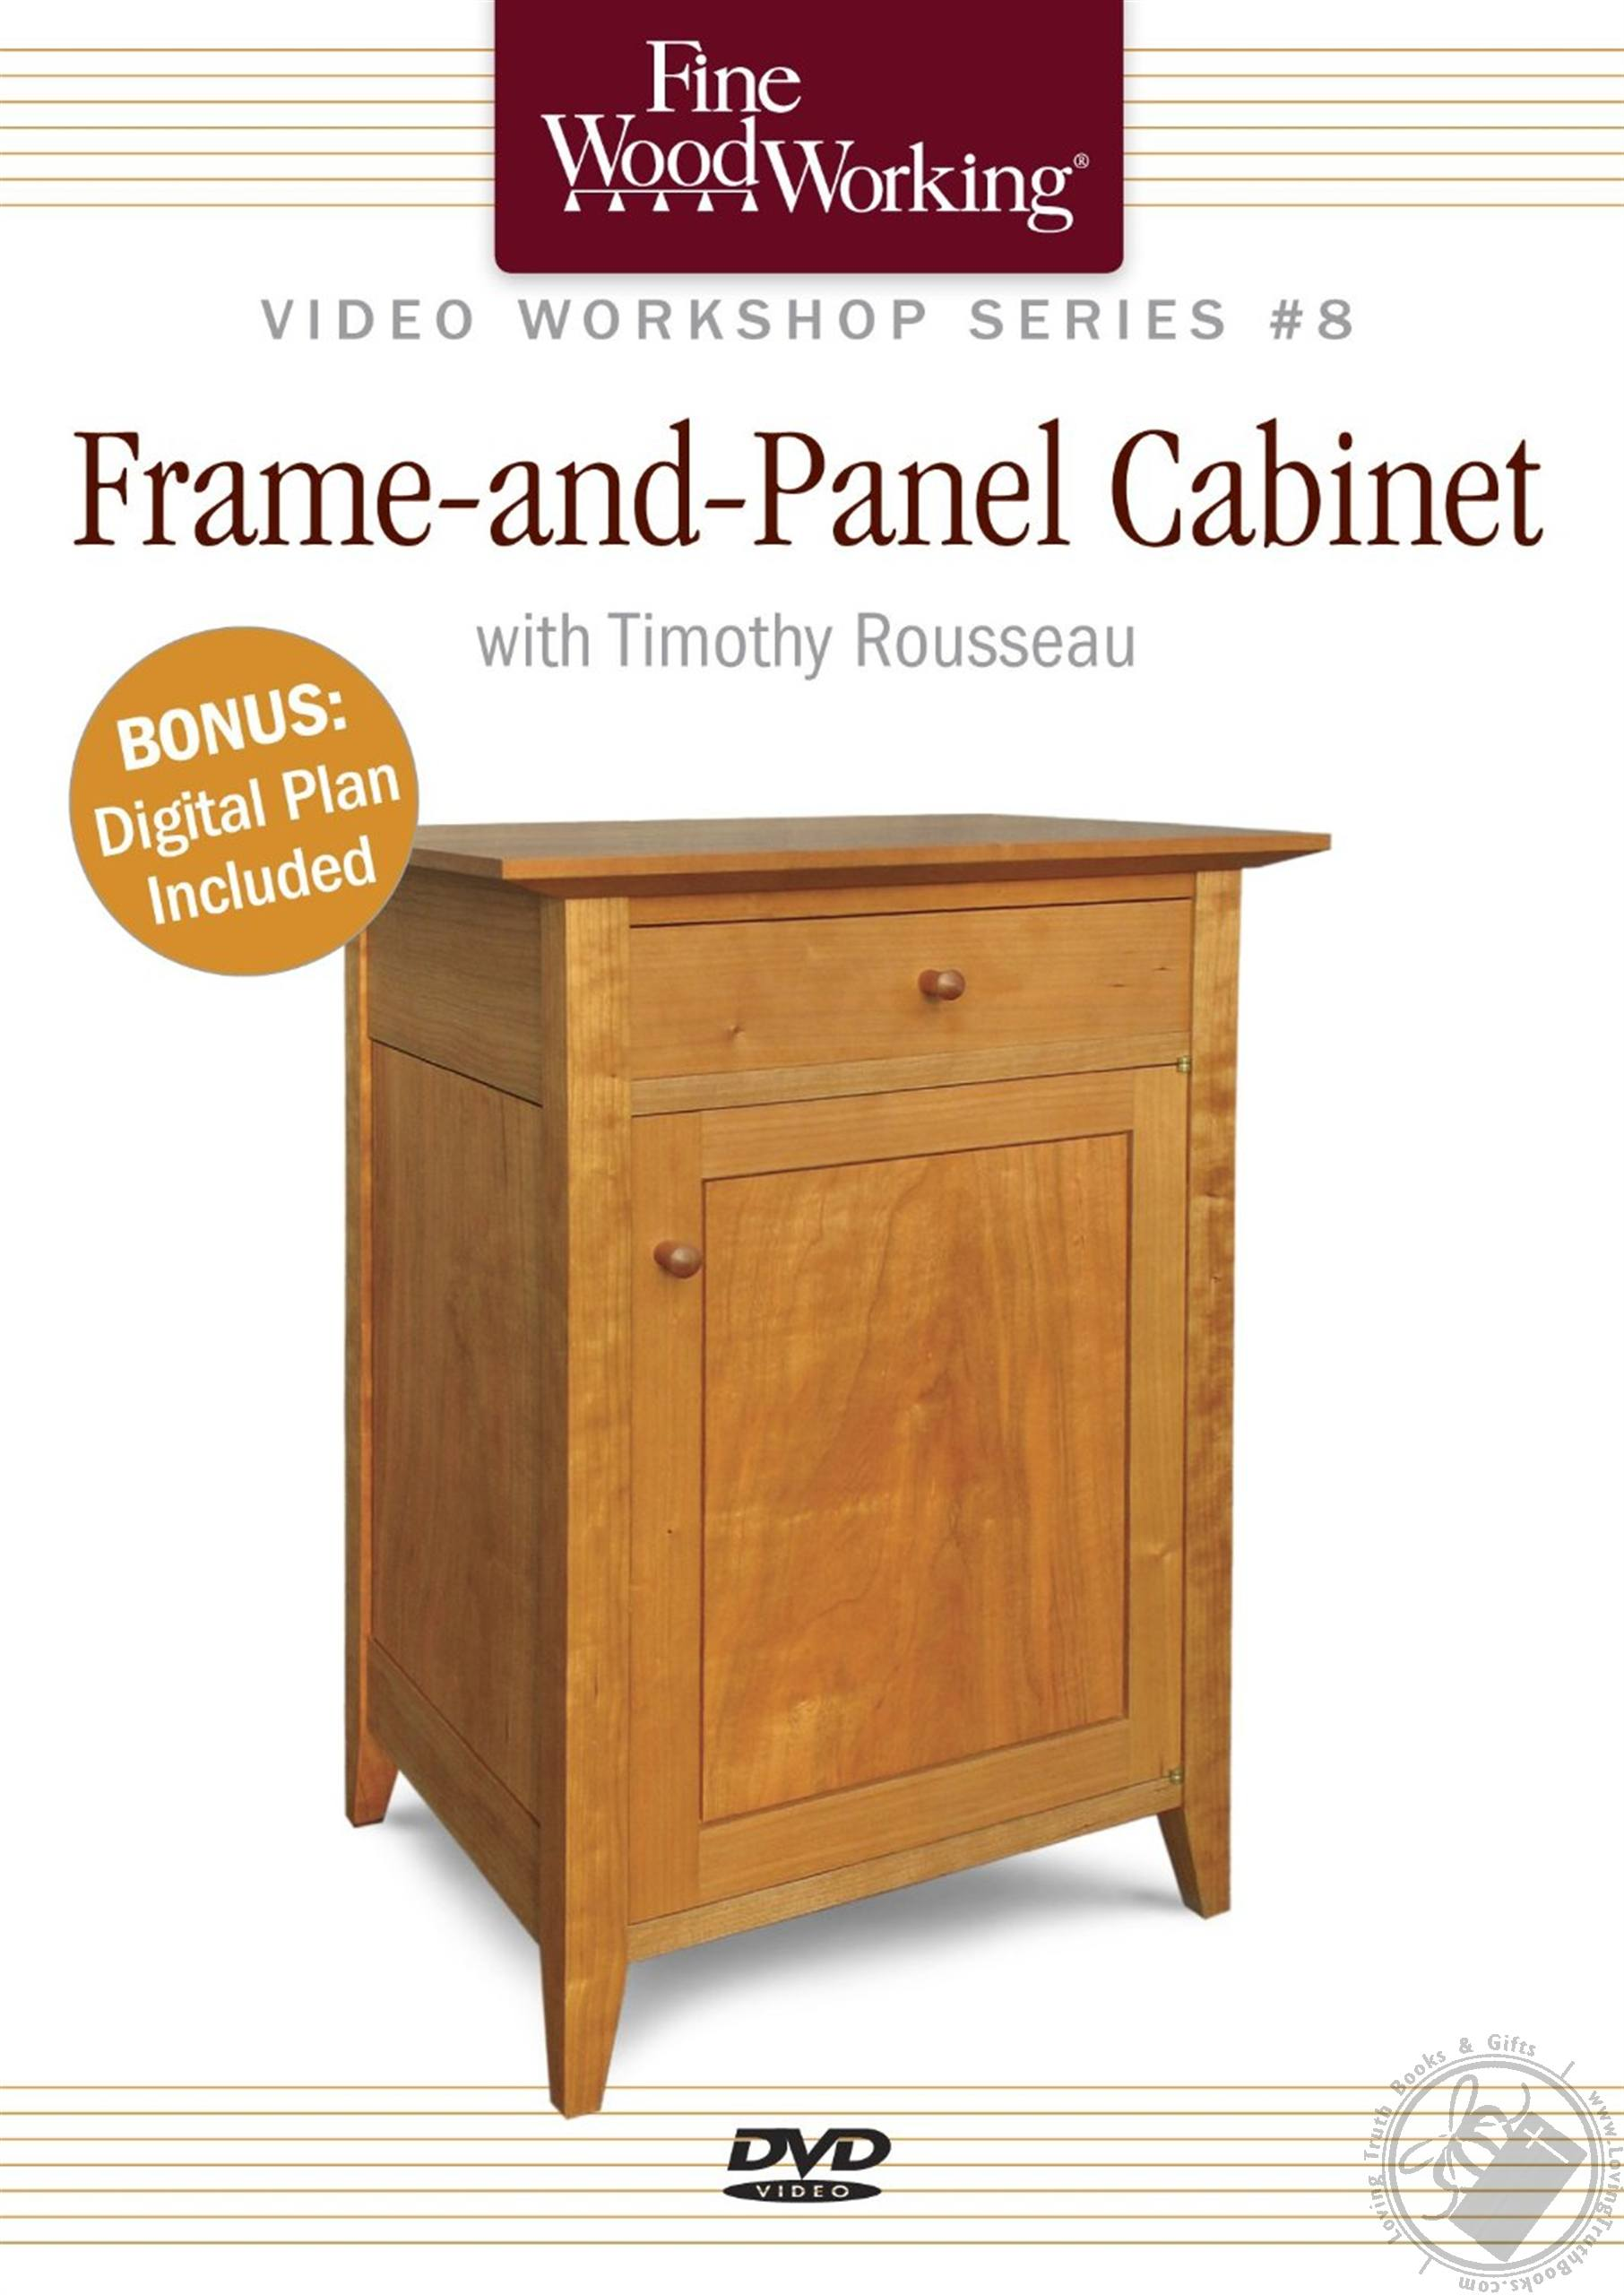 Frame and Panel Cabinet with Timothy Rousseau Includes Digital Plan (A Fine Woodworking DVD